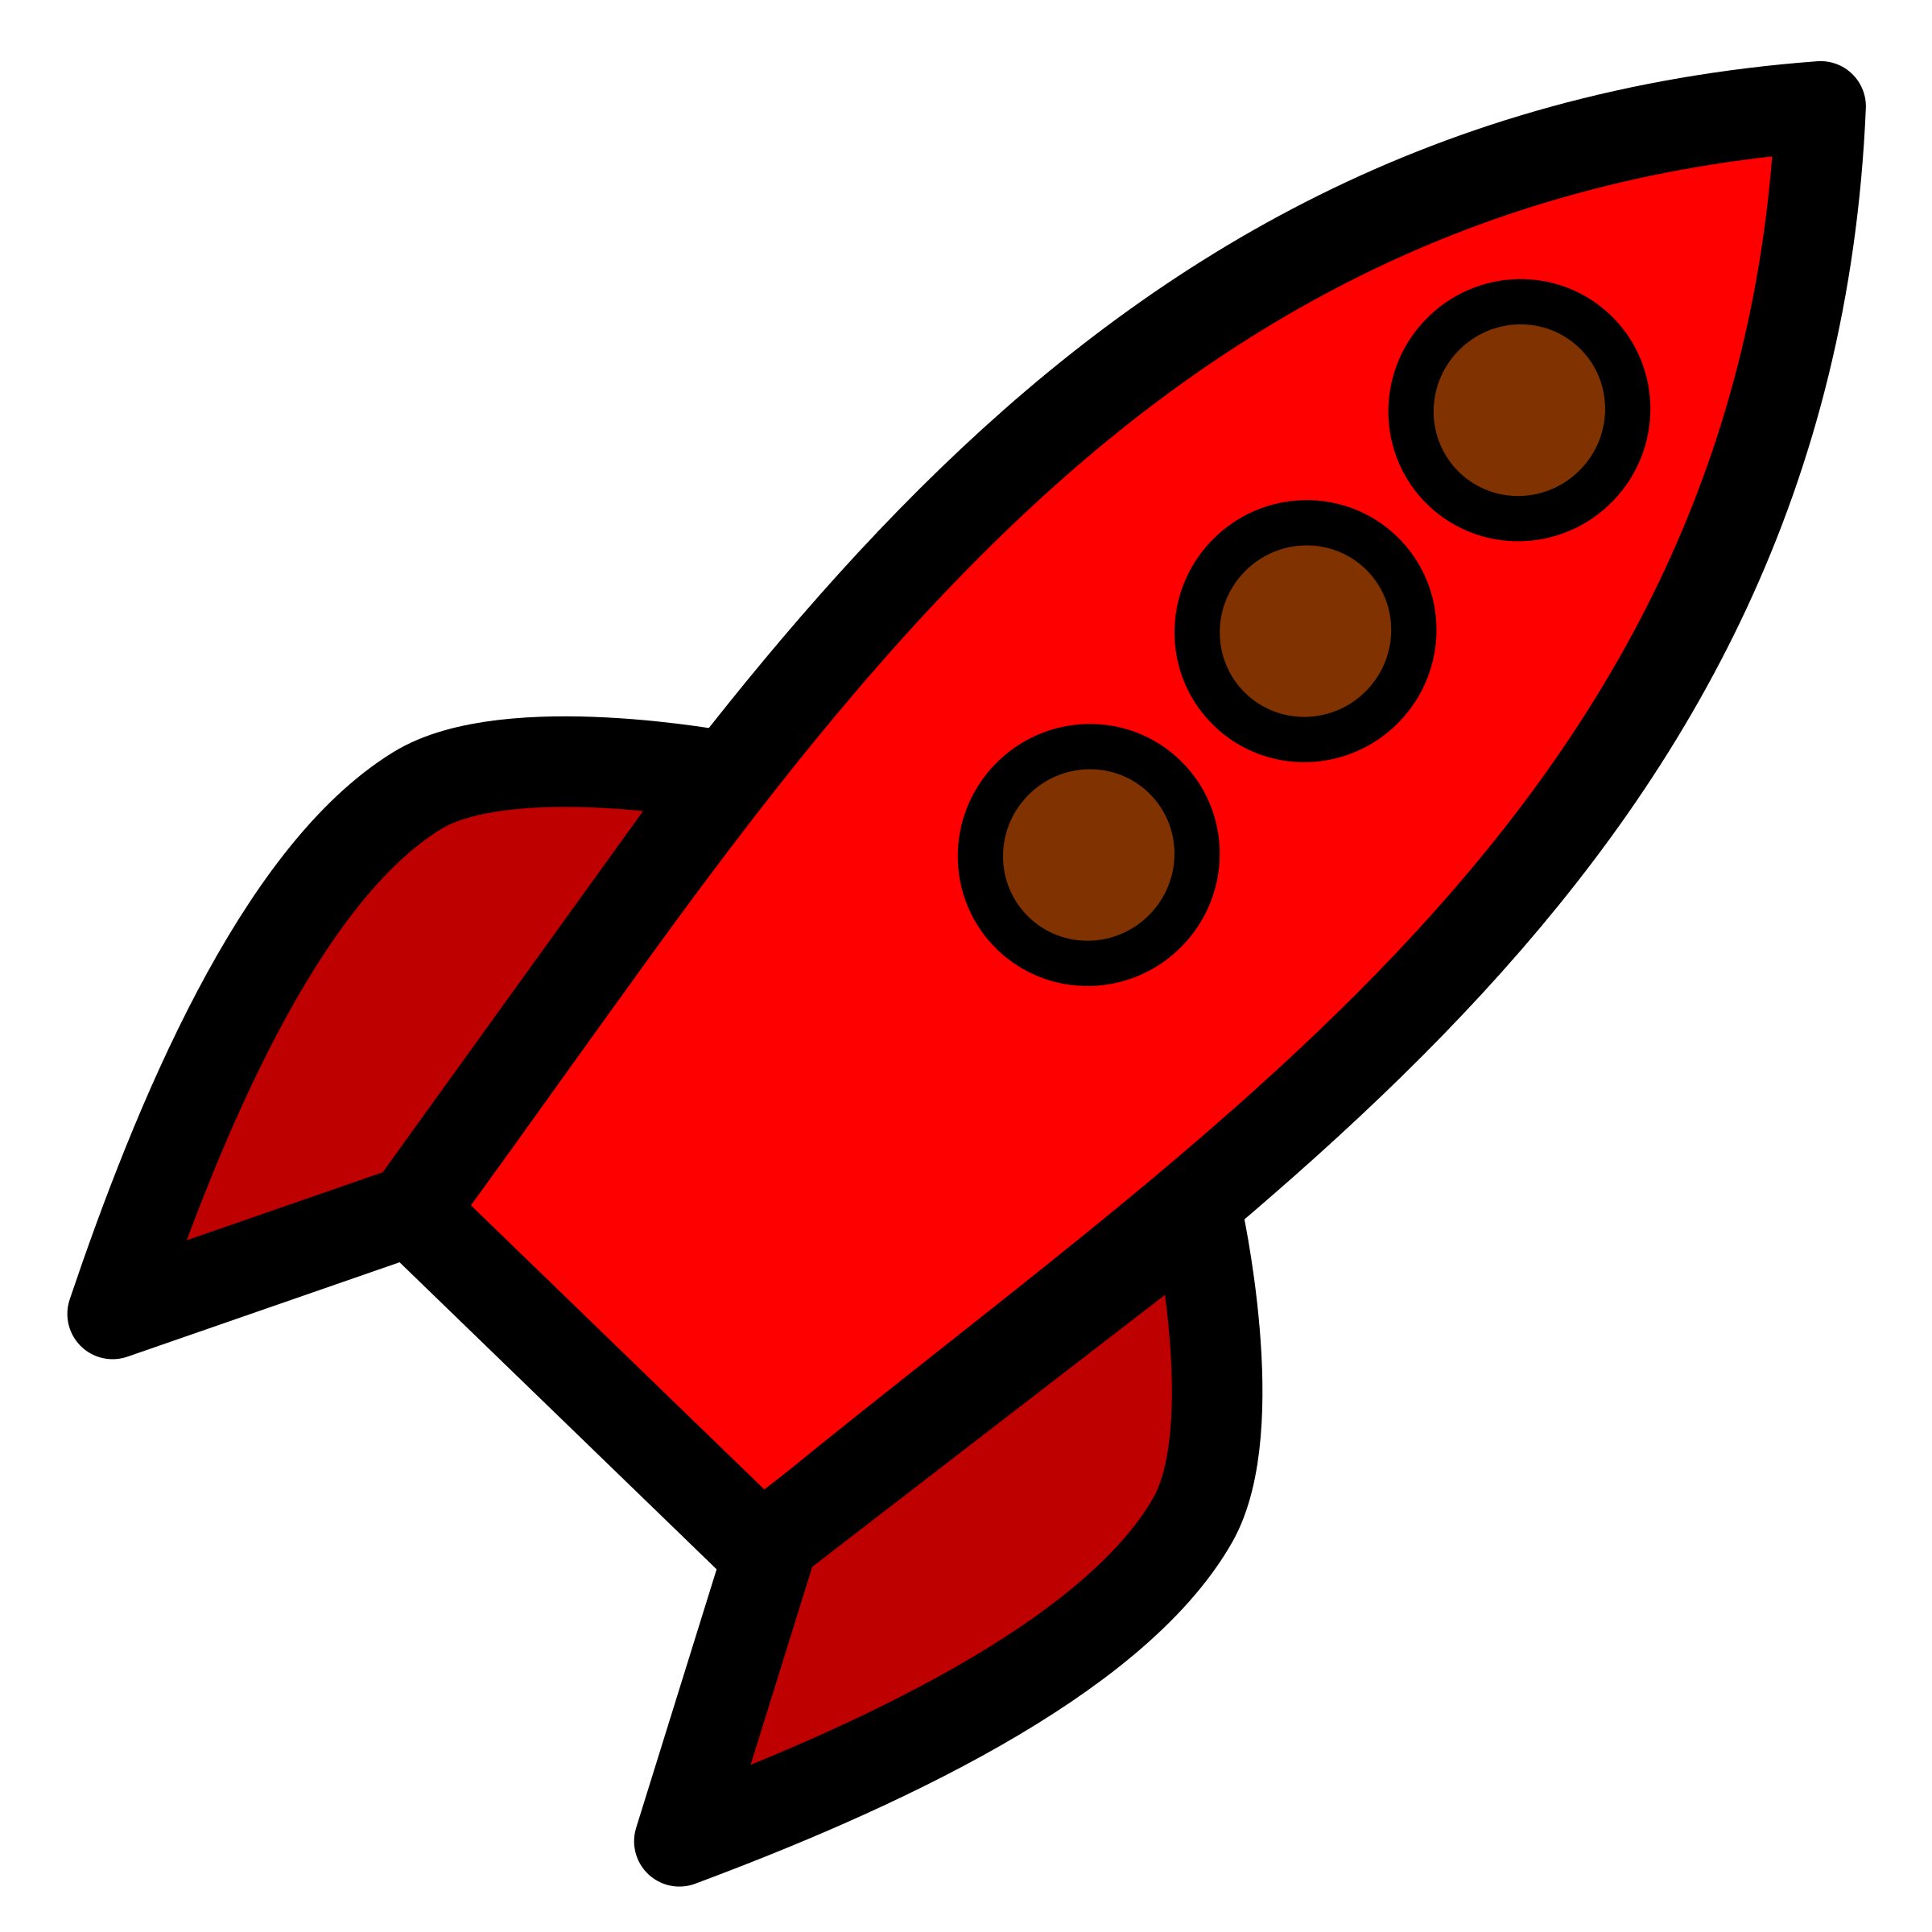 Rocket - red by Technaturally